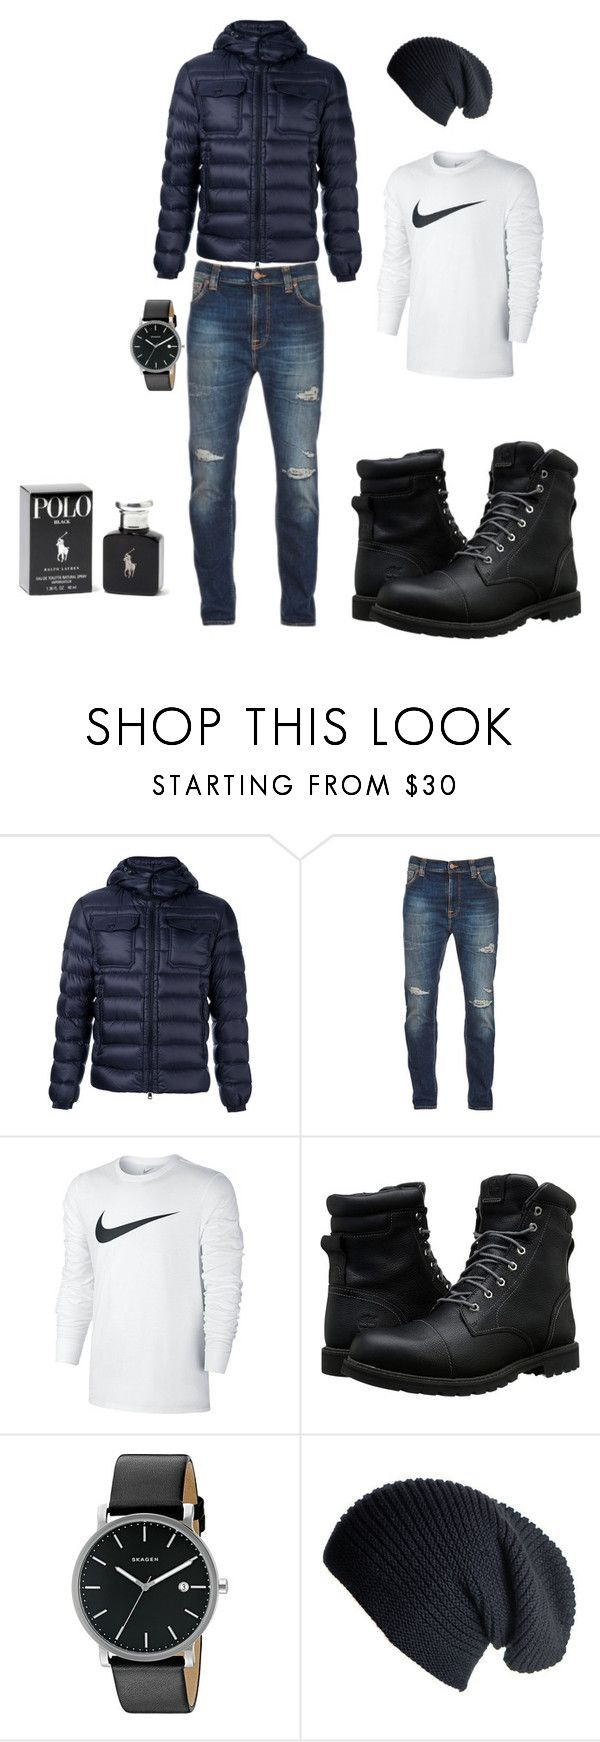 """men"" by merisa-imsirovic ❤ liked on Polyvore featuring Moncler, Nudie Jeans Co., NIKE, Timberland, Skagen, Black, Ralph Lauren, men's fashion and menswear"